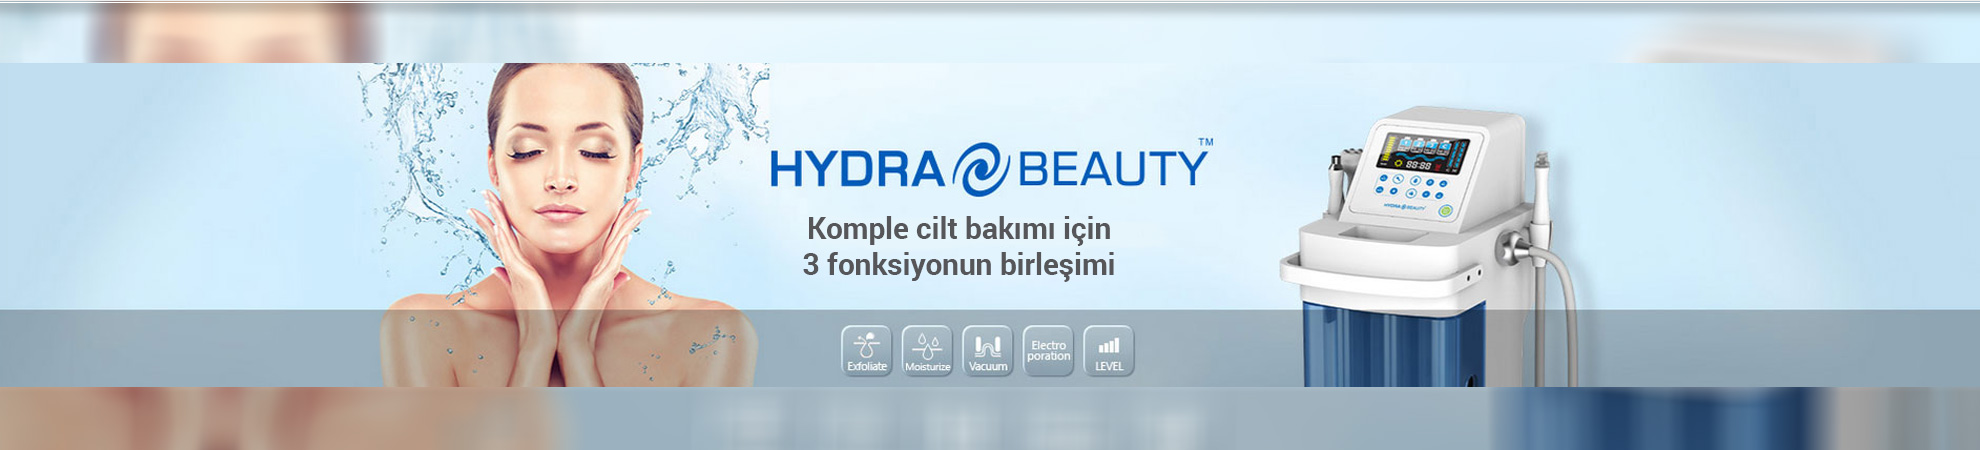 hydra-beauty-banner